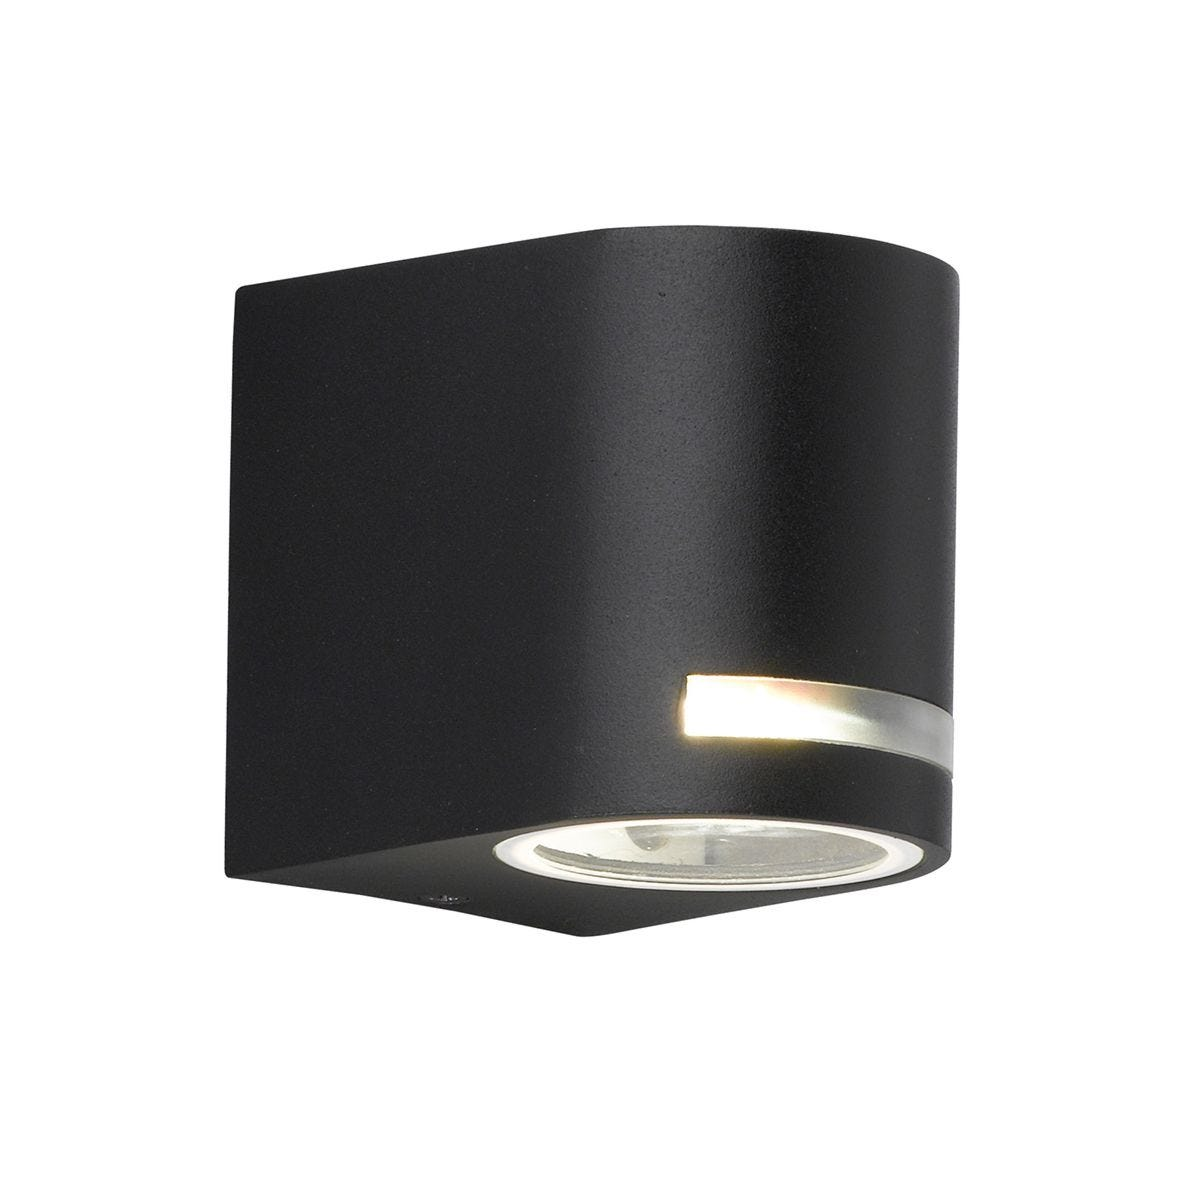 Wofi Panama Wall Lamp - Black